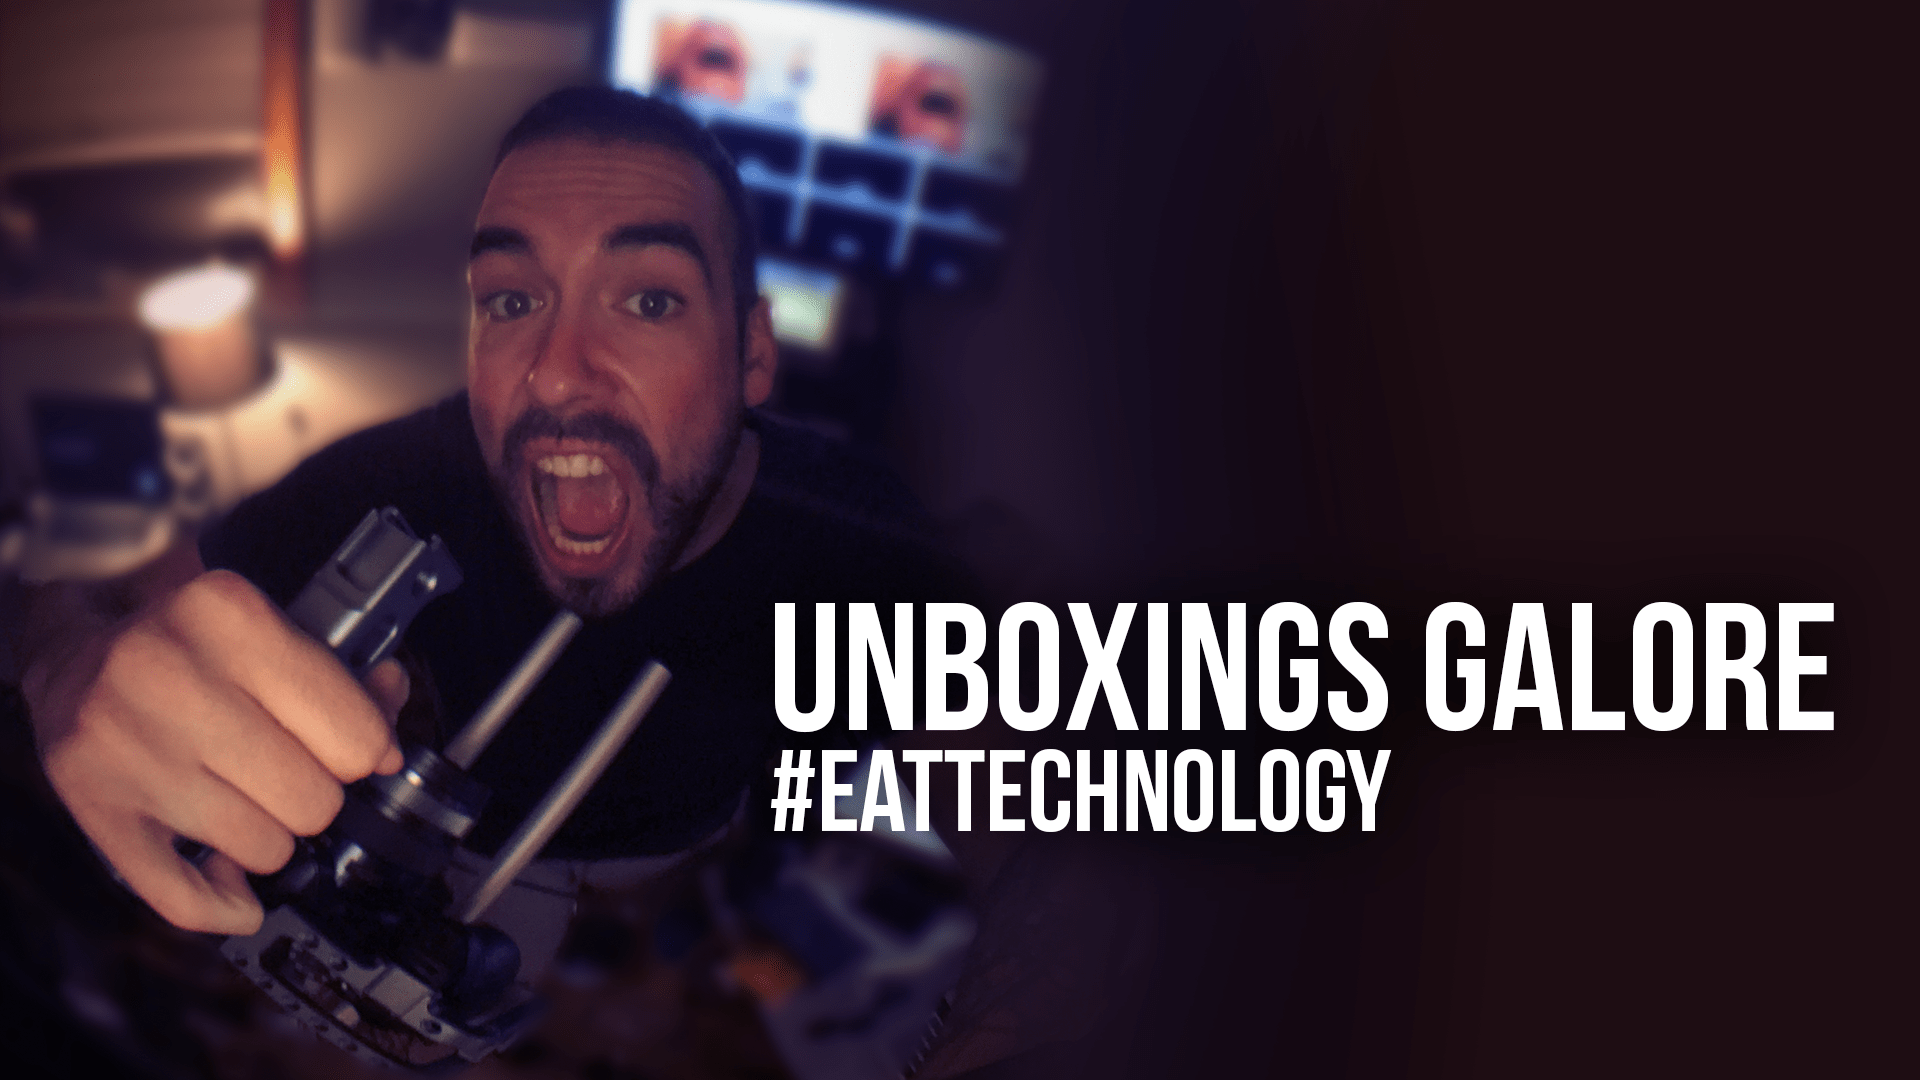 UNBOXINGS GALORE -#EATTECHNOLOGY